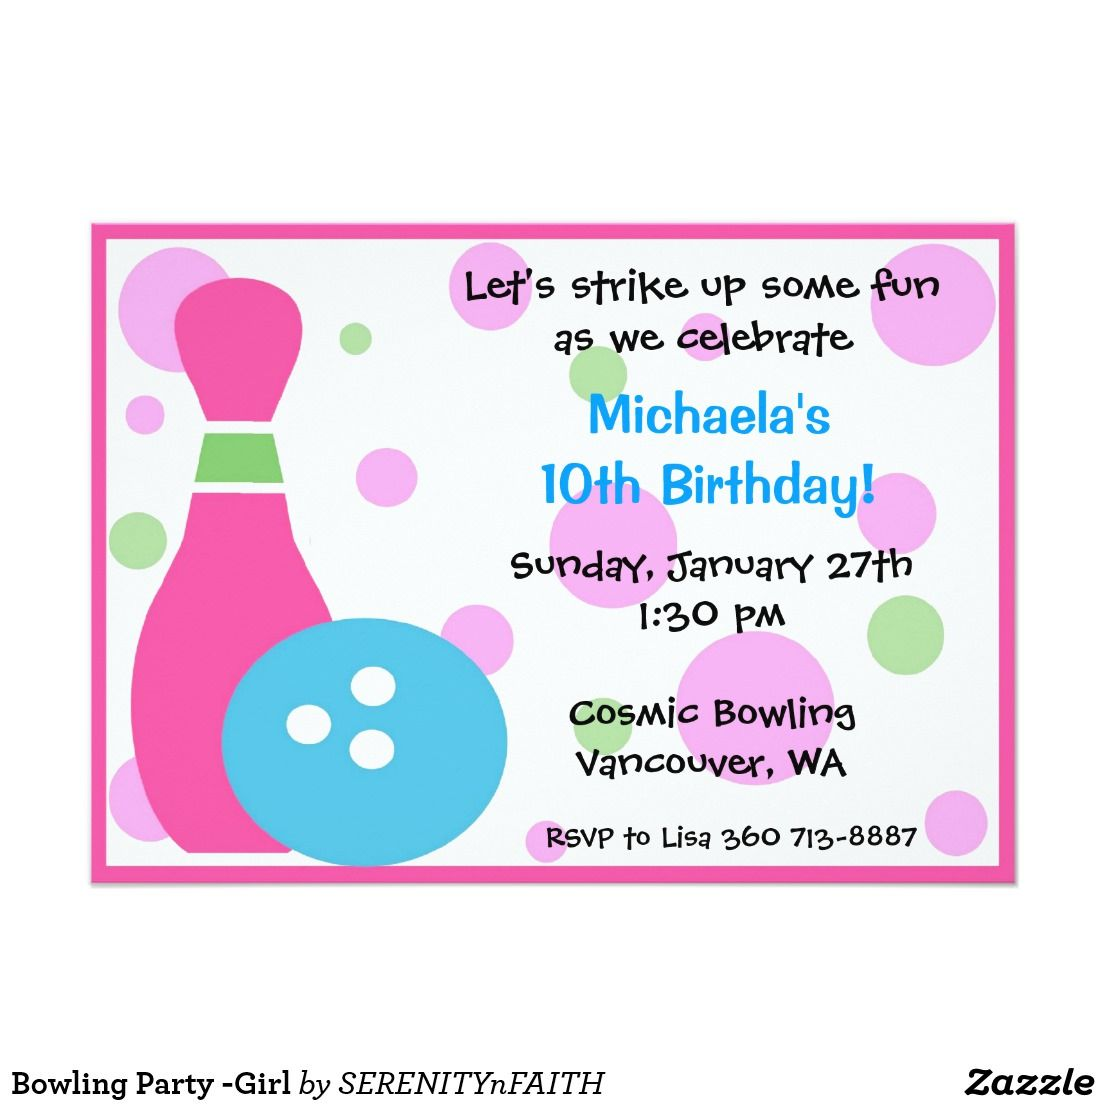 Bowling Party -Girl Card | Bowling party